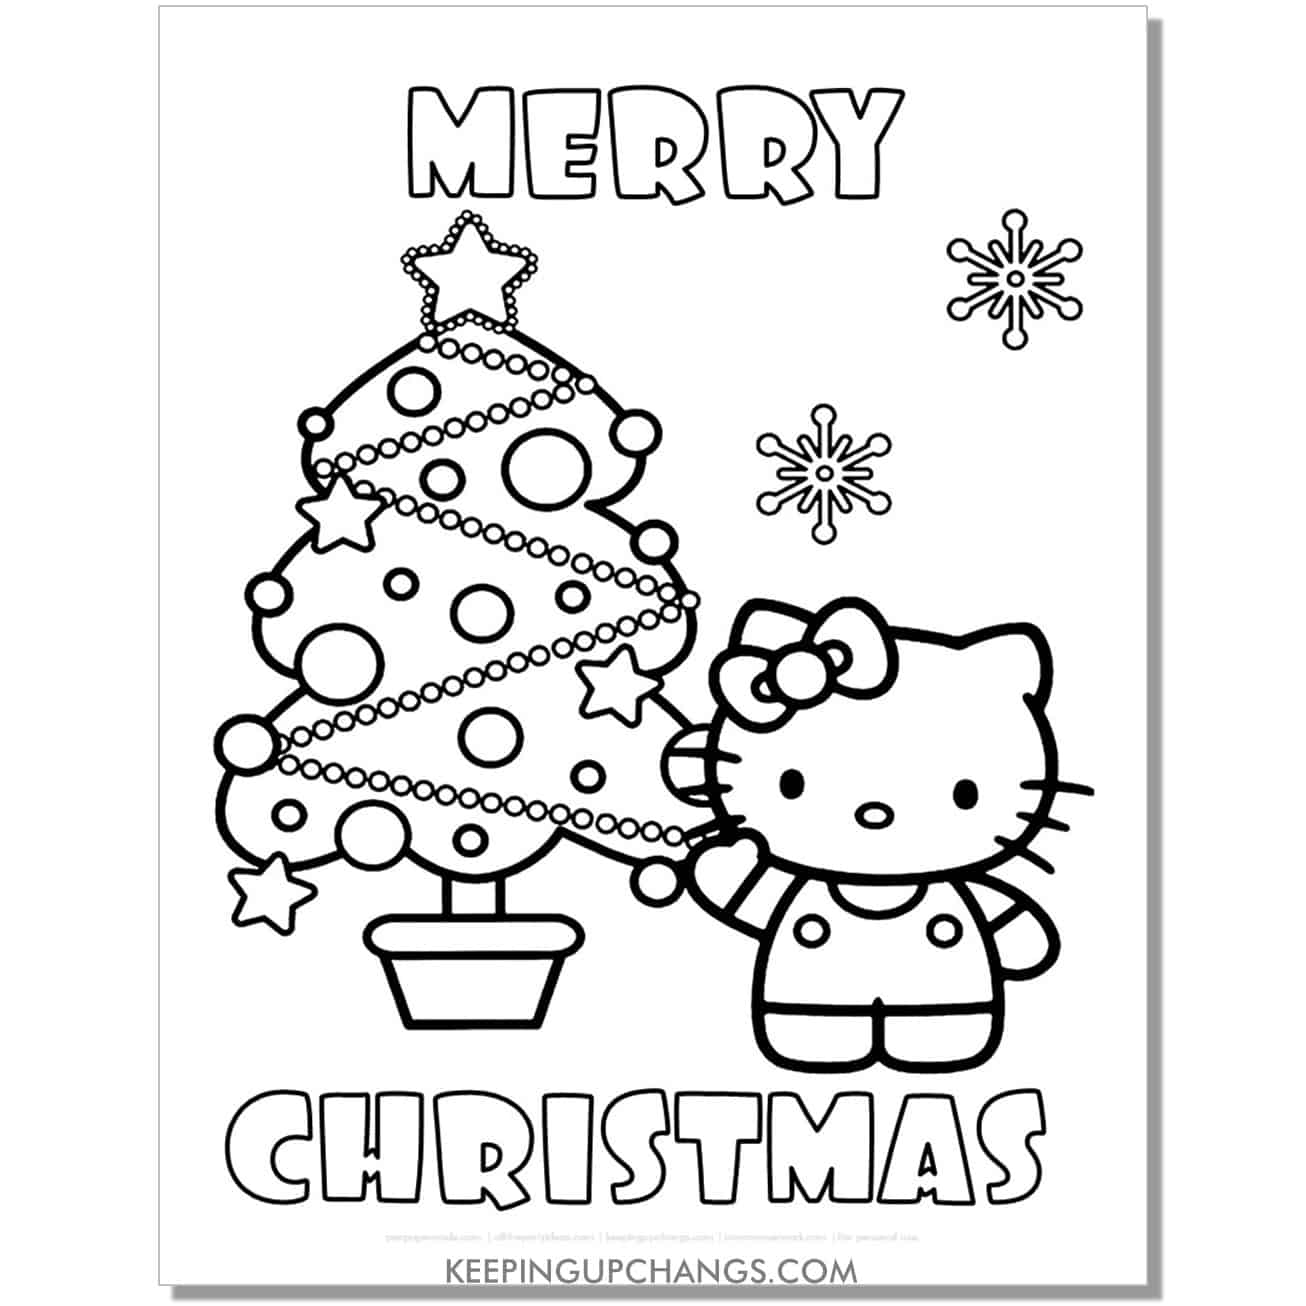 merry christmas tree and snowflakes hello kitty coloring page.